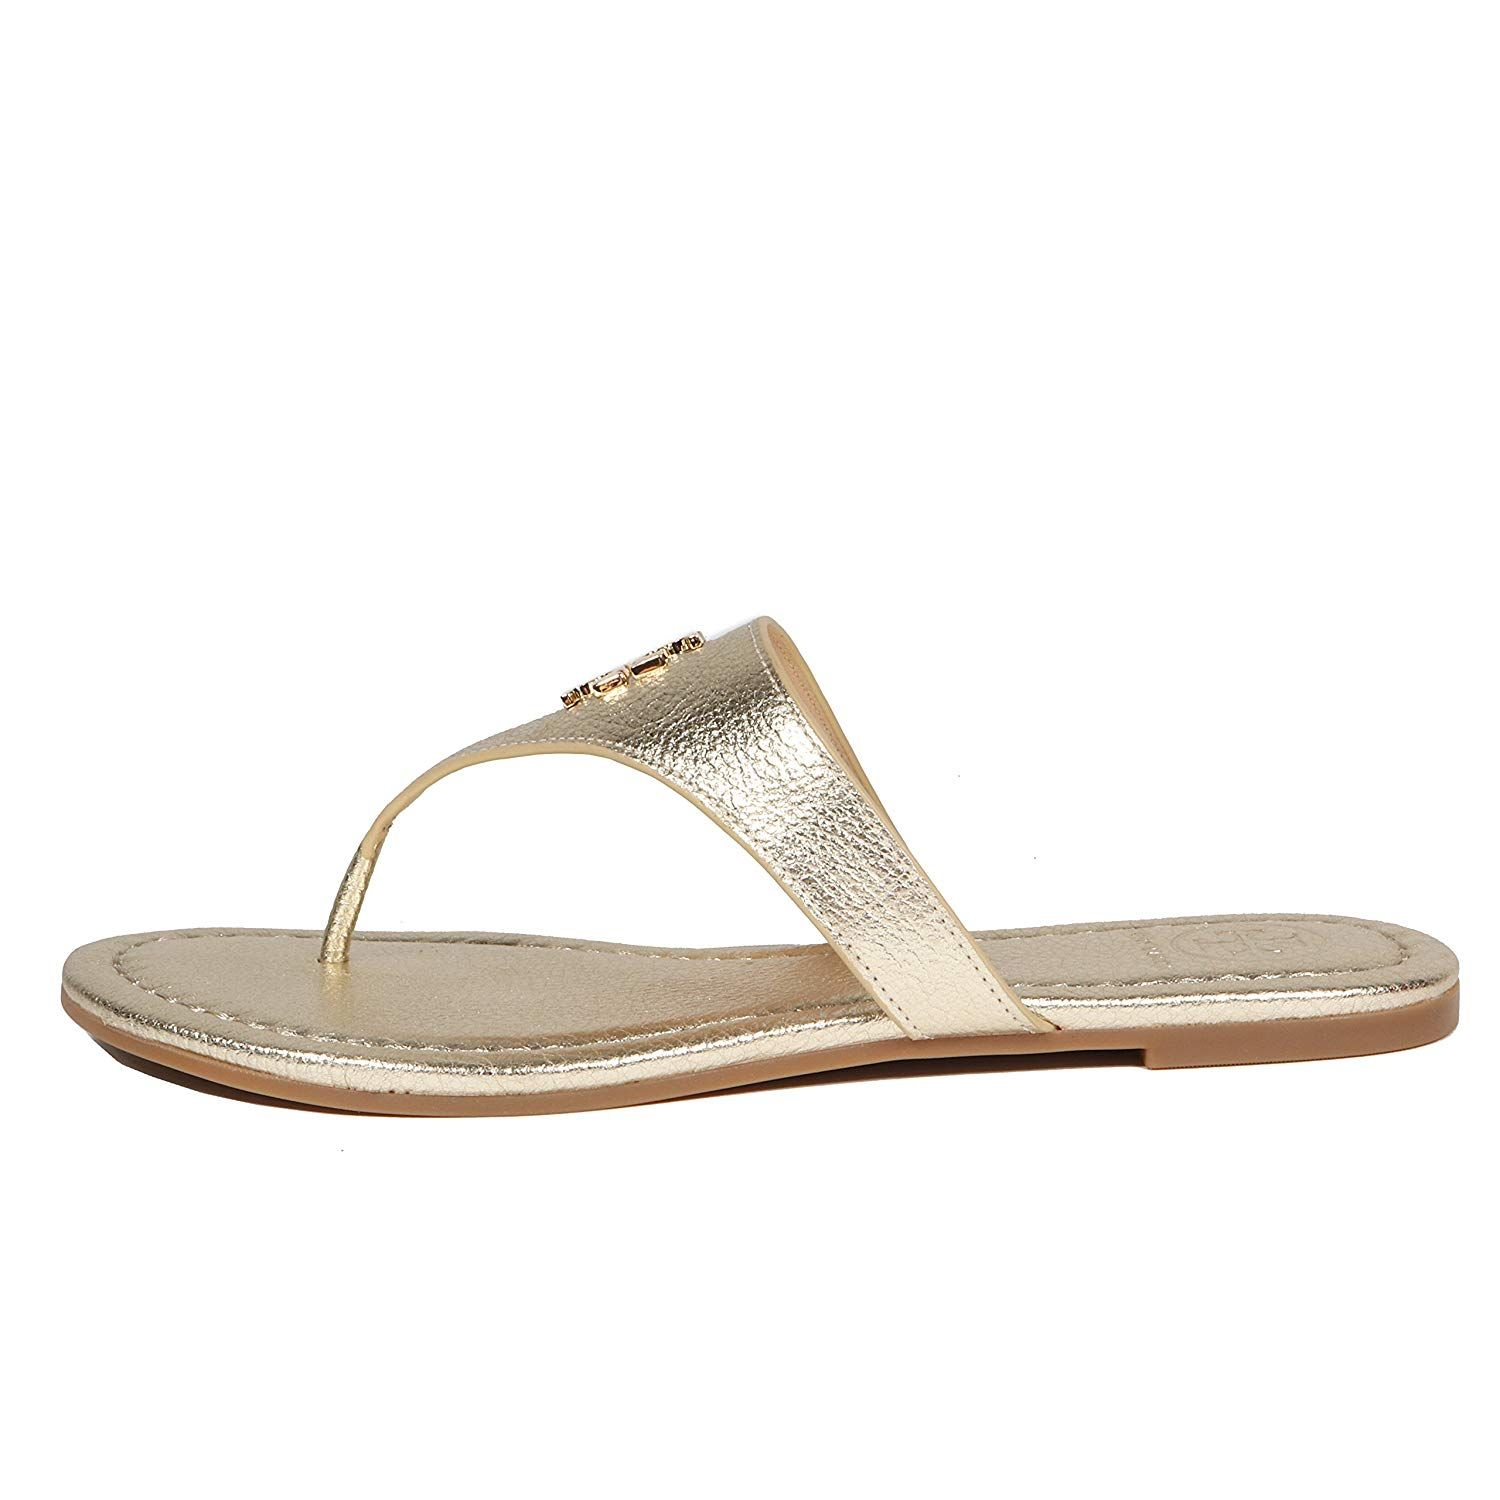 ca5c6fefe2c3a6 Tory Burch Laura Flip Flop Flats Thong Tumbled Leather TB Logo -- Find out  more about the great product at the image link. (This is an affiliate link)    ...